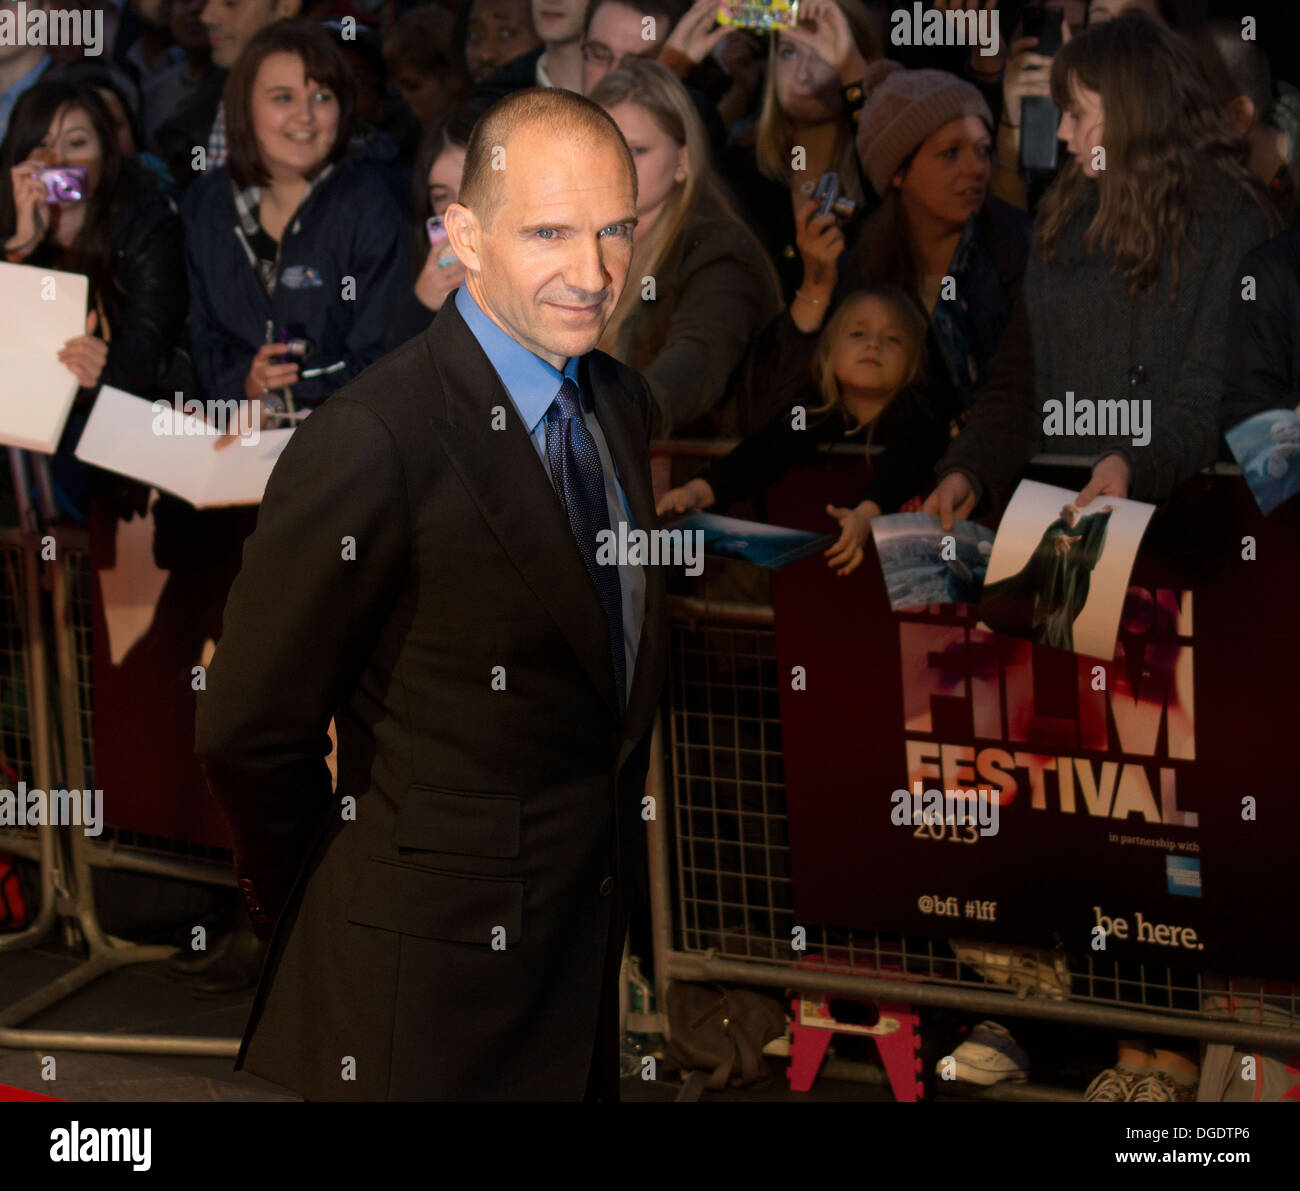 Actor Ralph Fiennes attending premiere of The Invisible Woman at London Film Festival - Stock Image